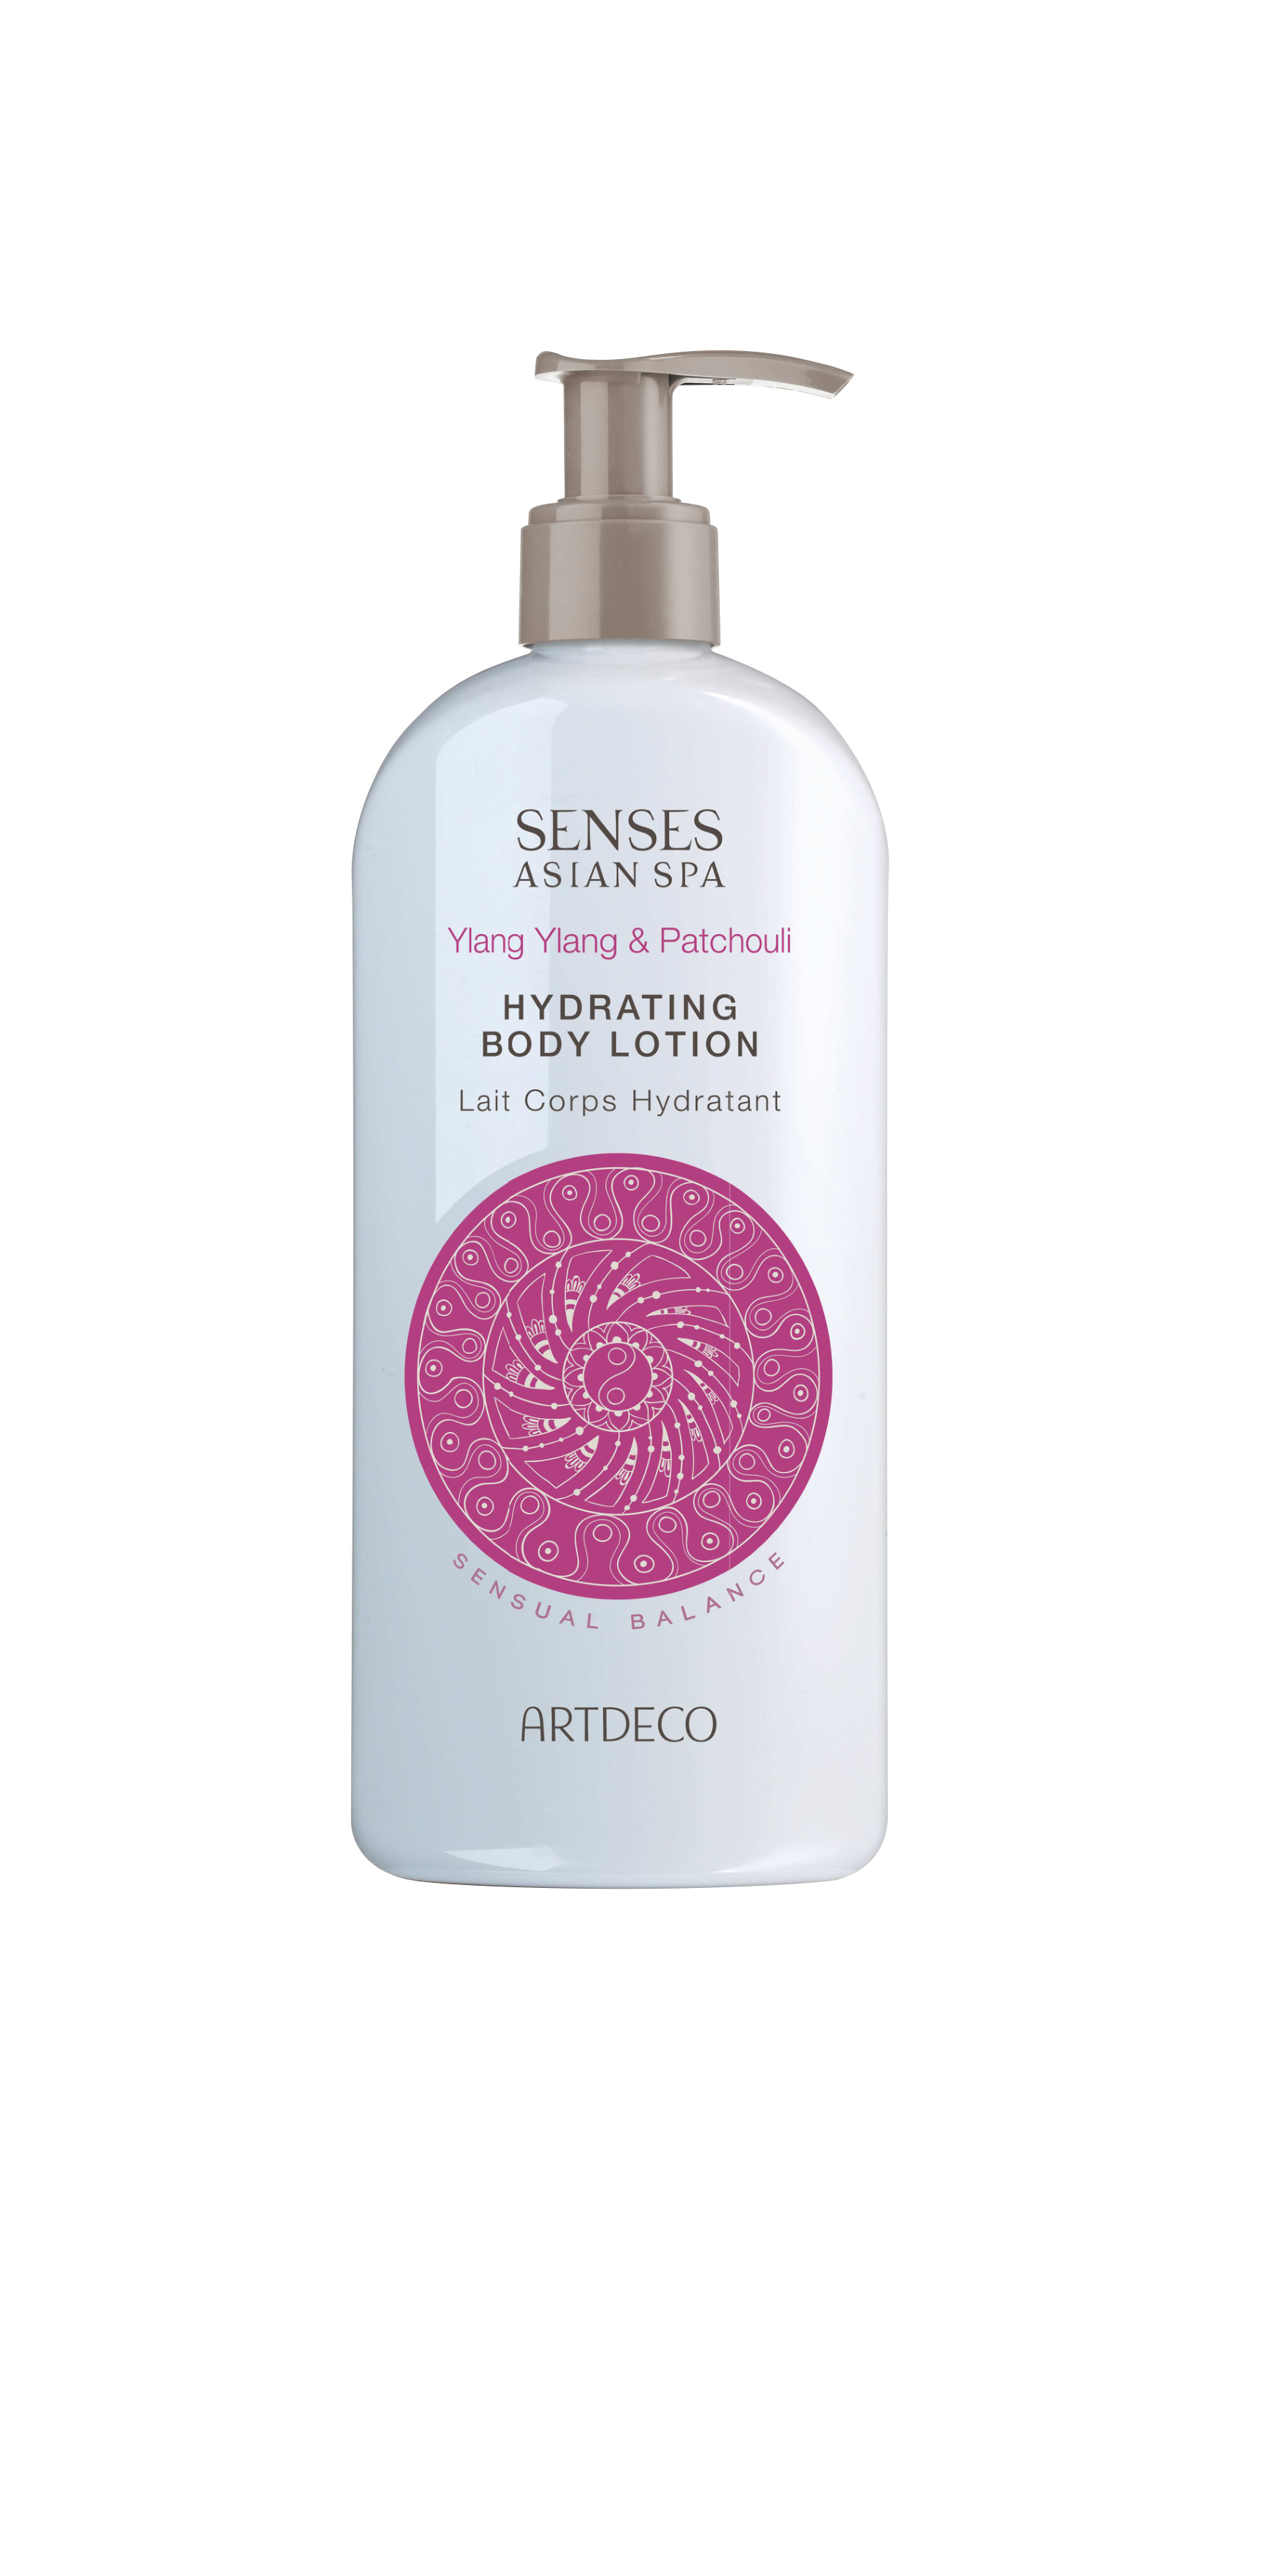 Artdeco лосьон для тела увлажняющий Hydrating body lotion, sensual balance, 200 мл soehnle 63760 body balance comfort select